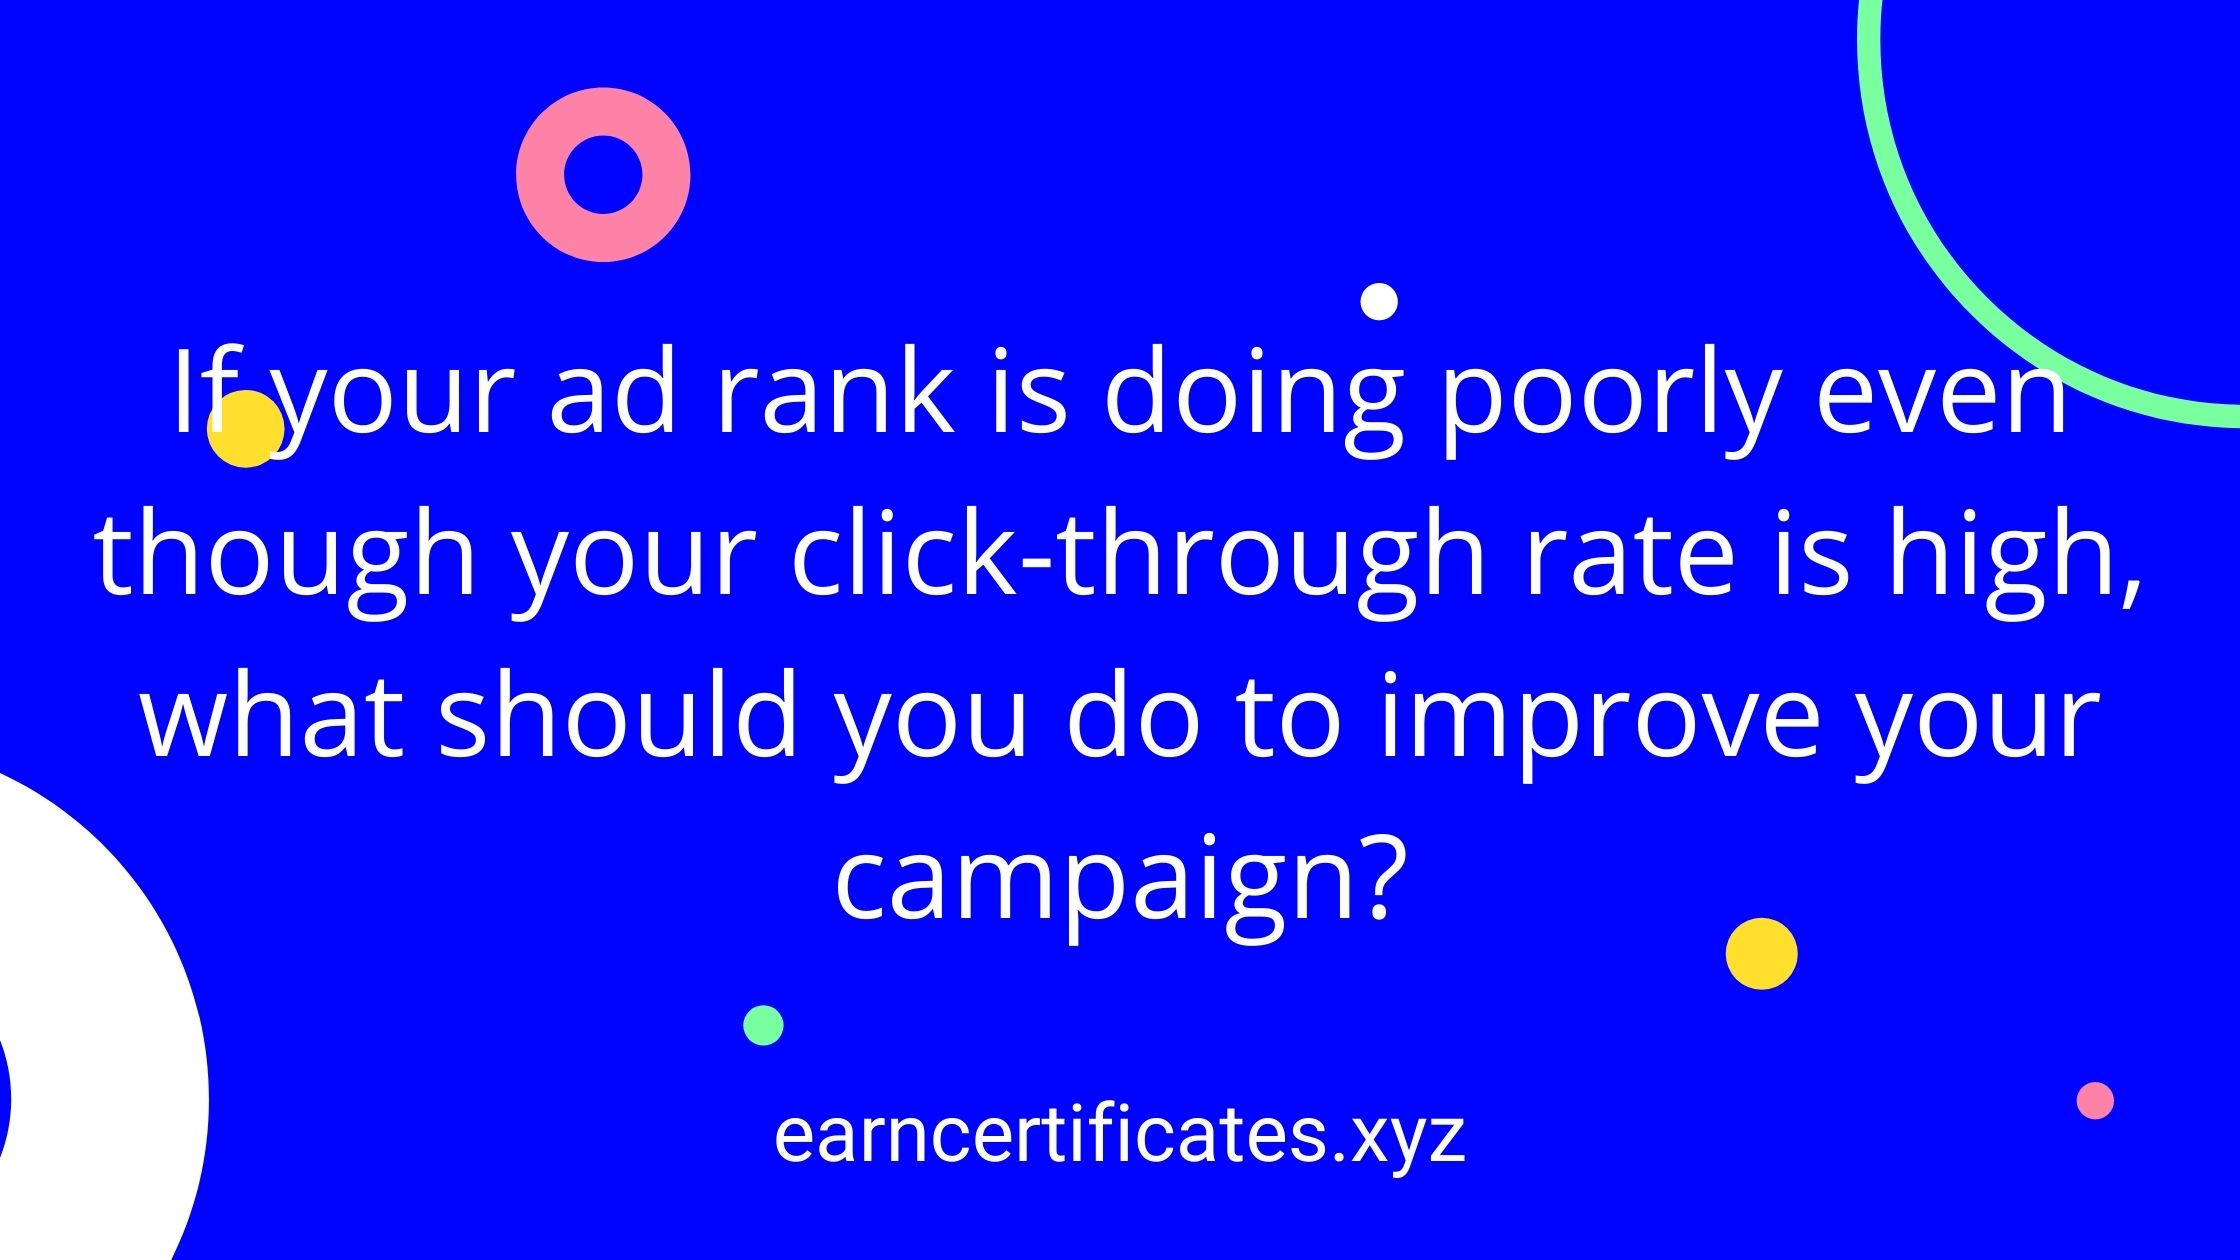 If your ad rank is doing poorly even though your click-through rate is high, what should you do to improve your campaign?